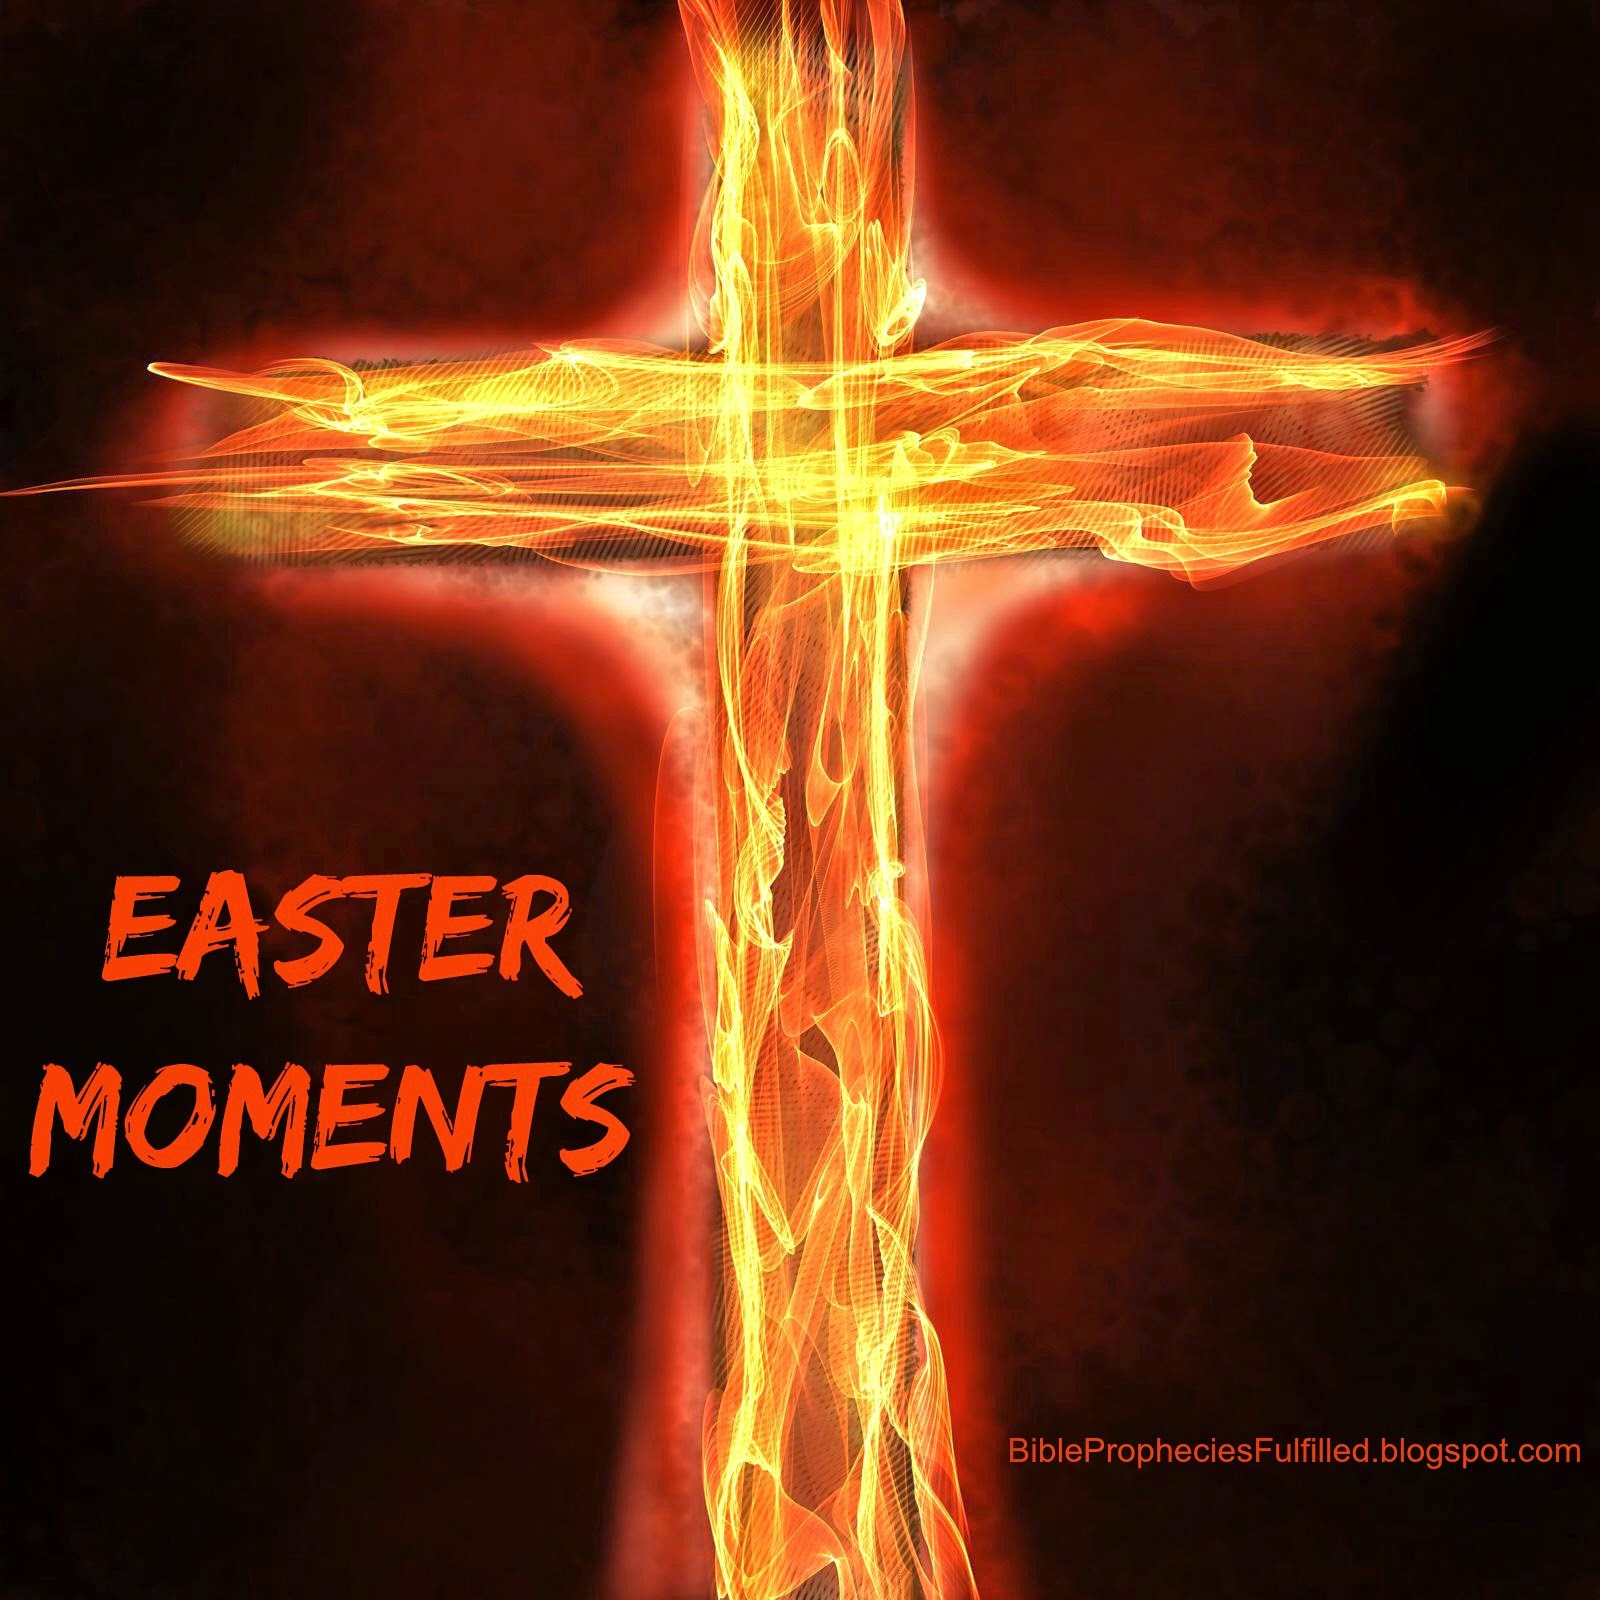 Bible prophecies fulfilled discover bible prophecies fulfilled in discover bible prophecies fulfilled in jesus death resurrection through easter moments shrovefat tuesday easter countdown day 40 buycottarizona